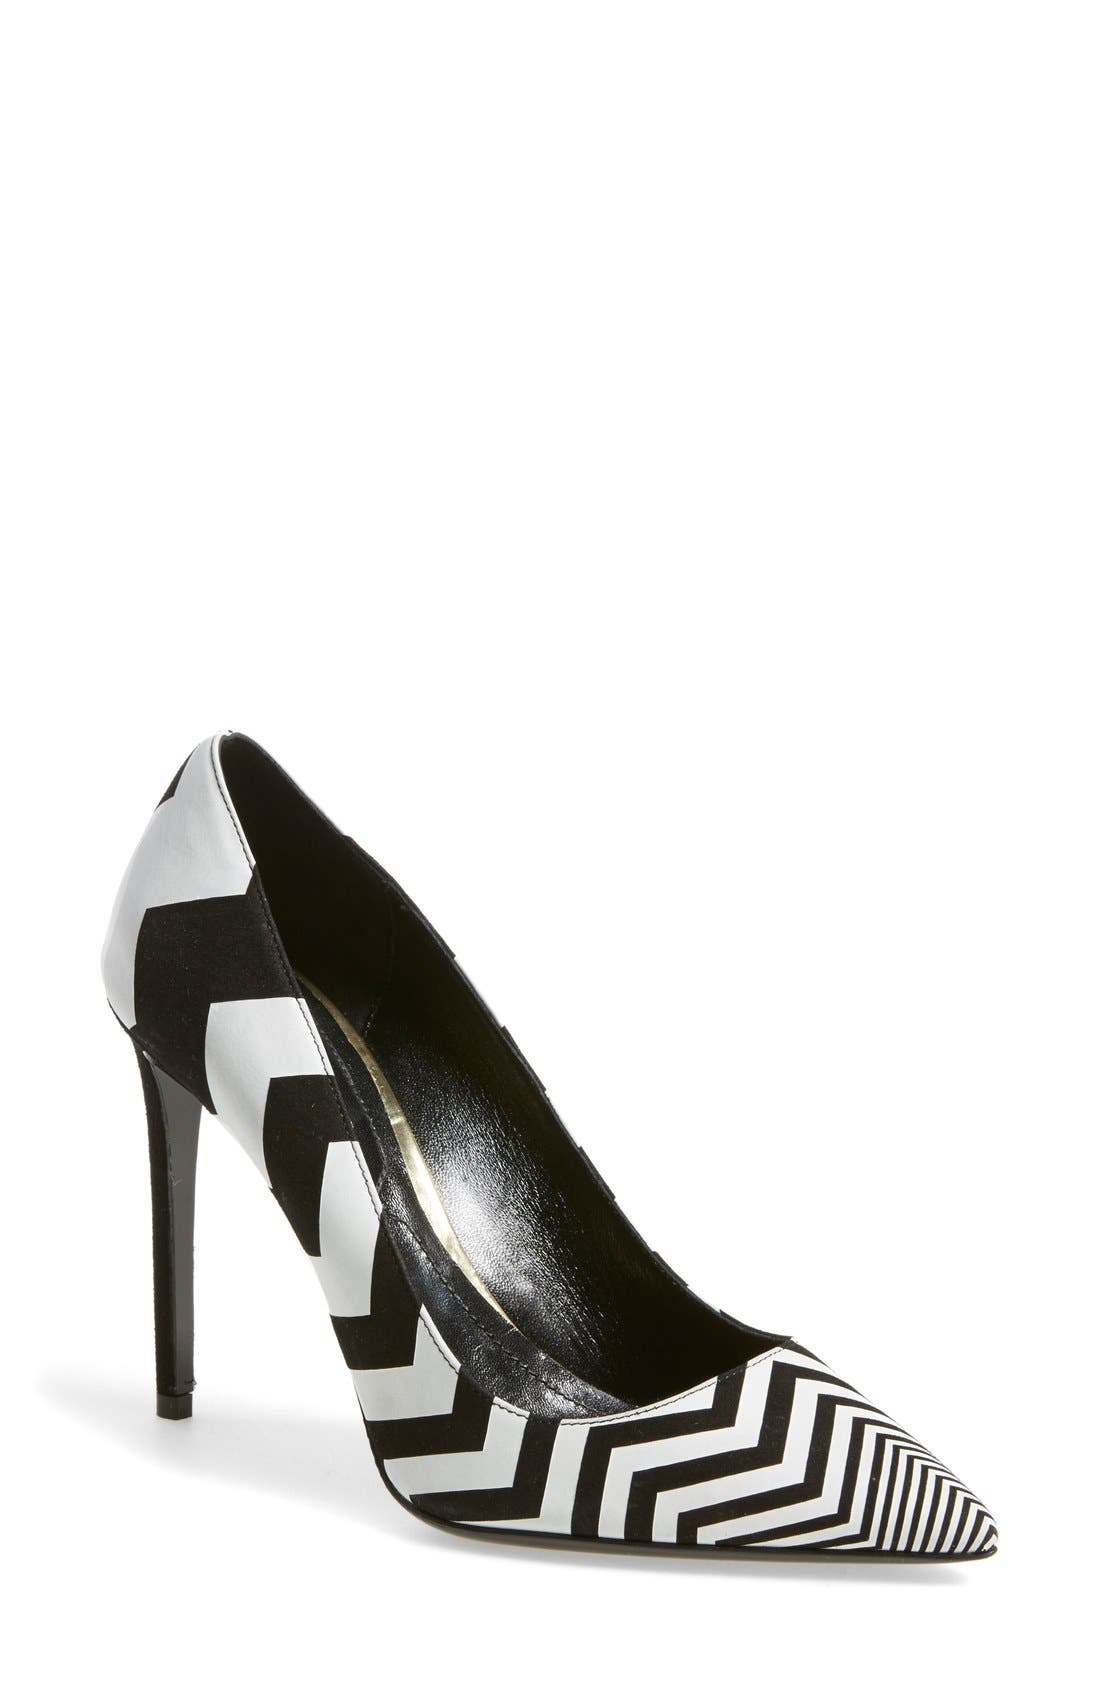 Alternate Image 1 Selected - Nicholas Kirkwood Chevron Pointy Toe Pump (Women)